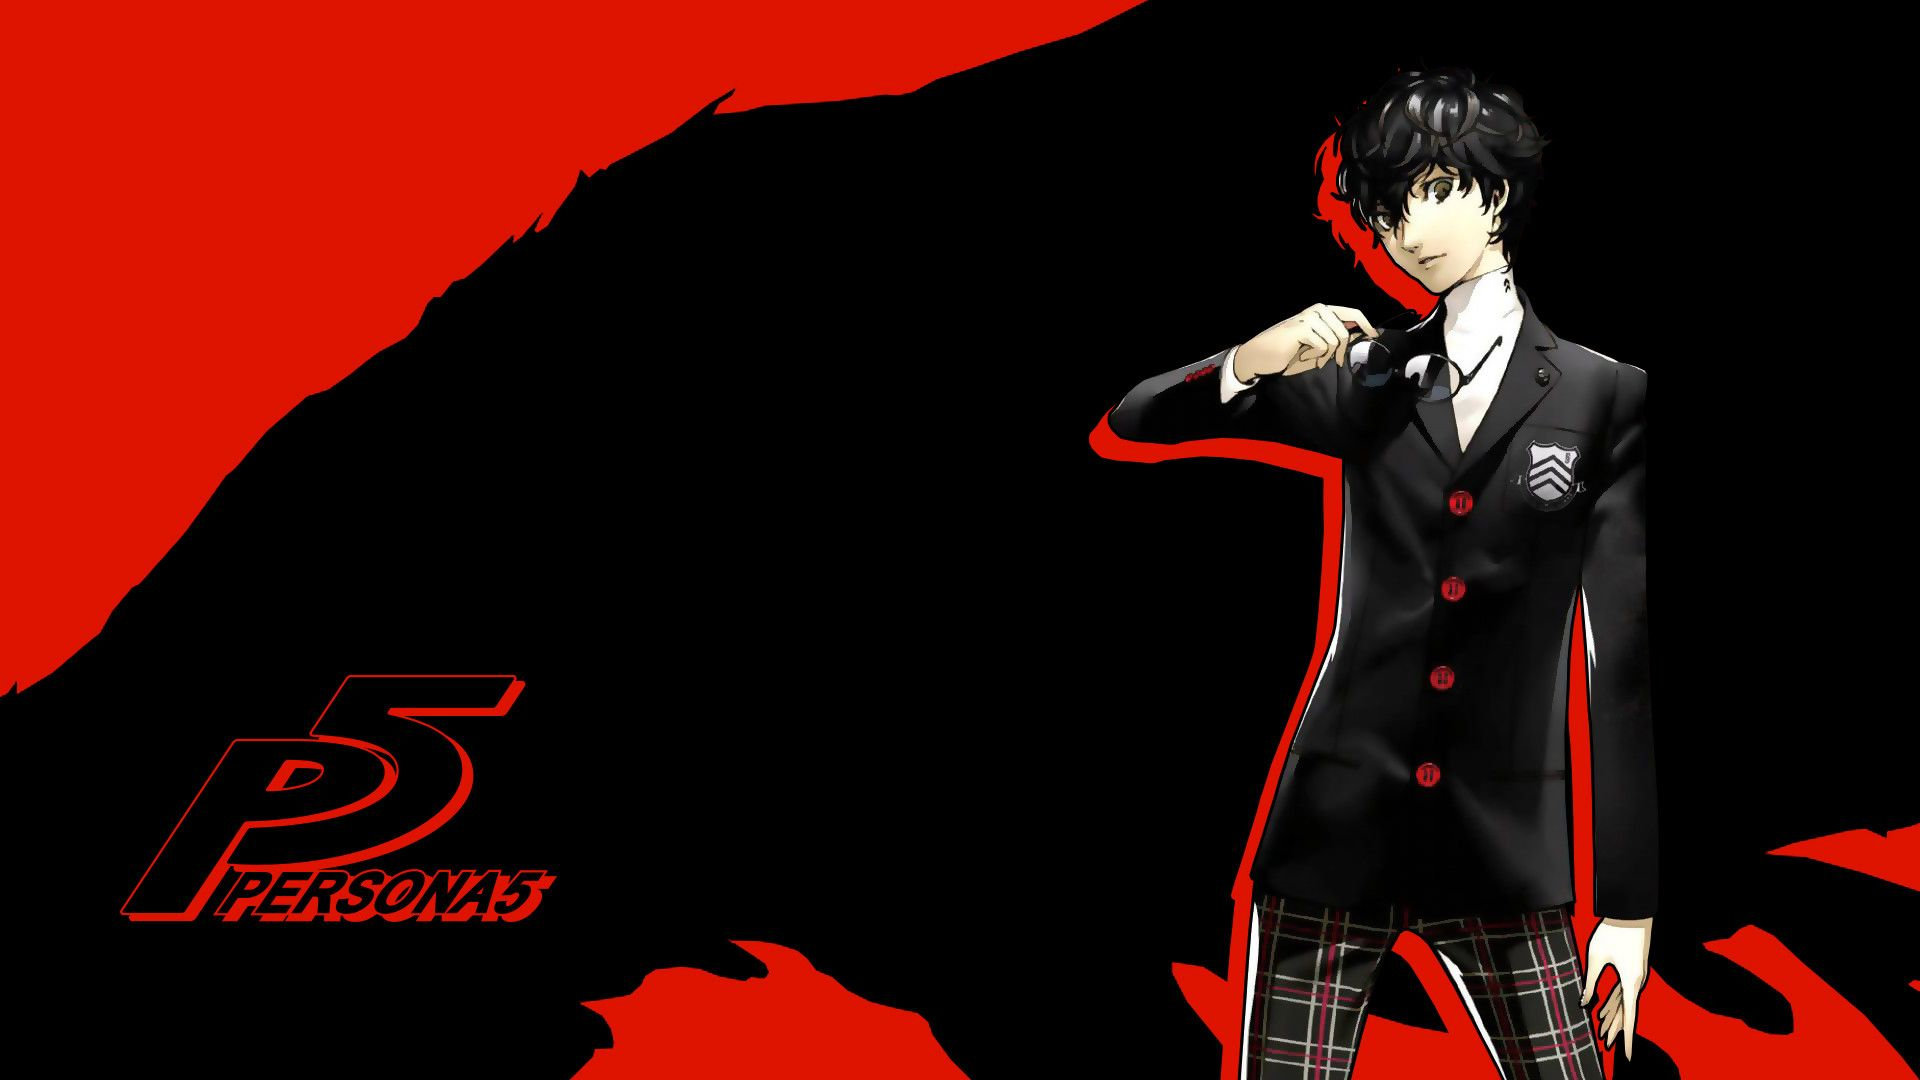 Persona 5 Wallpaper Hd 81 Images With Images Persona 5